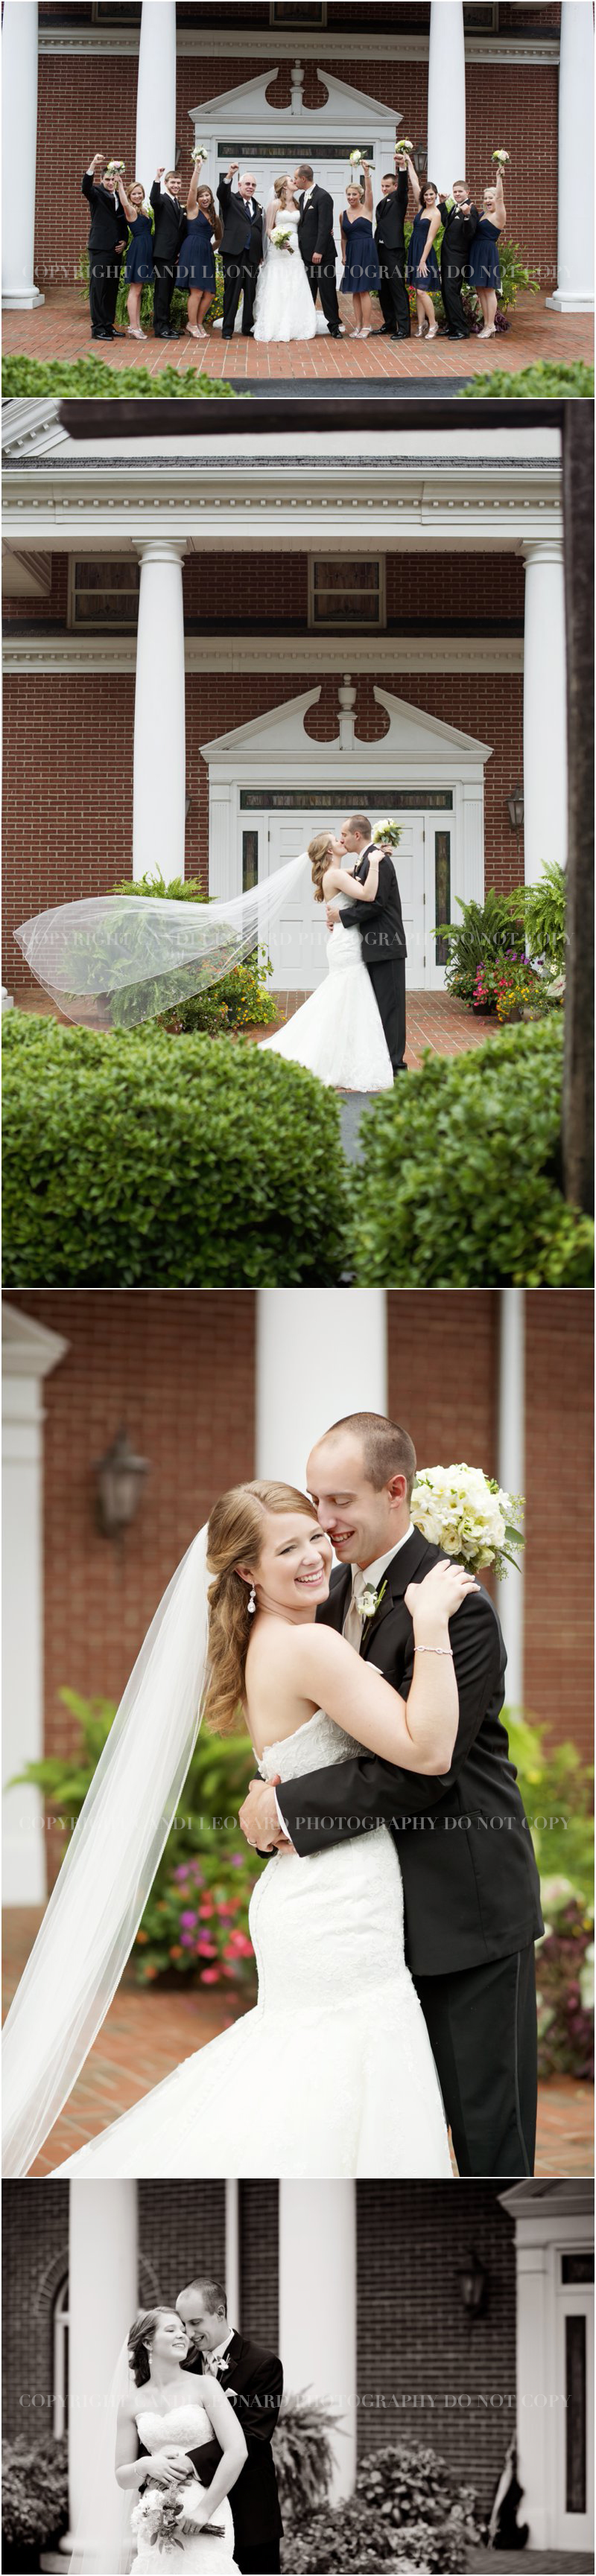 ASHEBORO_NC_wedding_photographer_0962